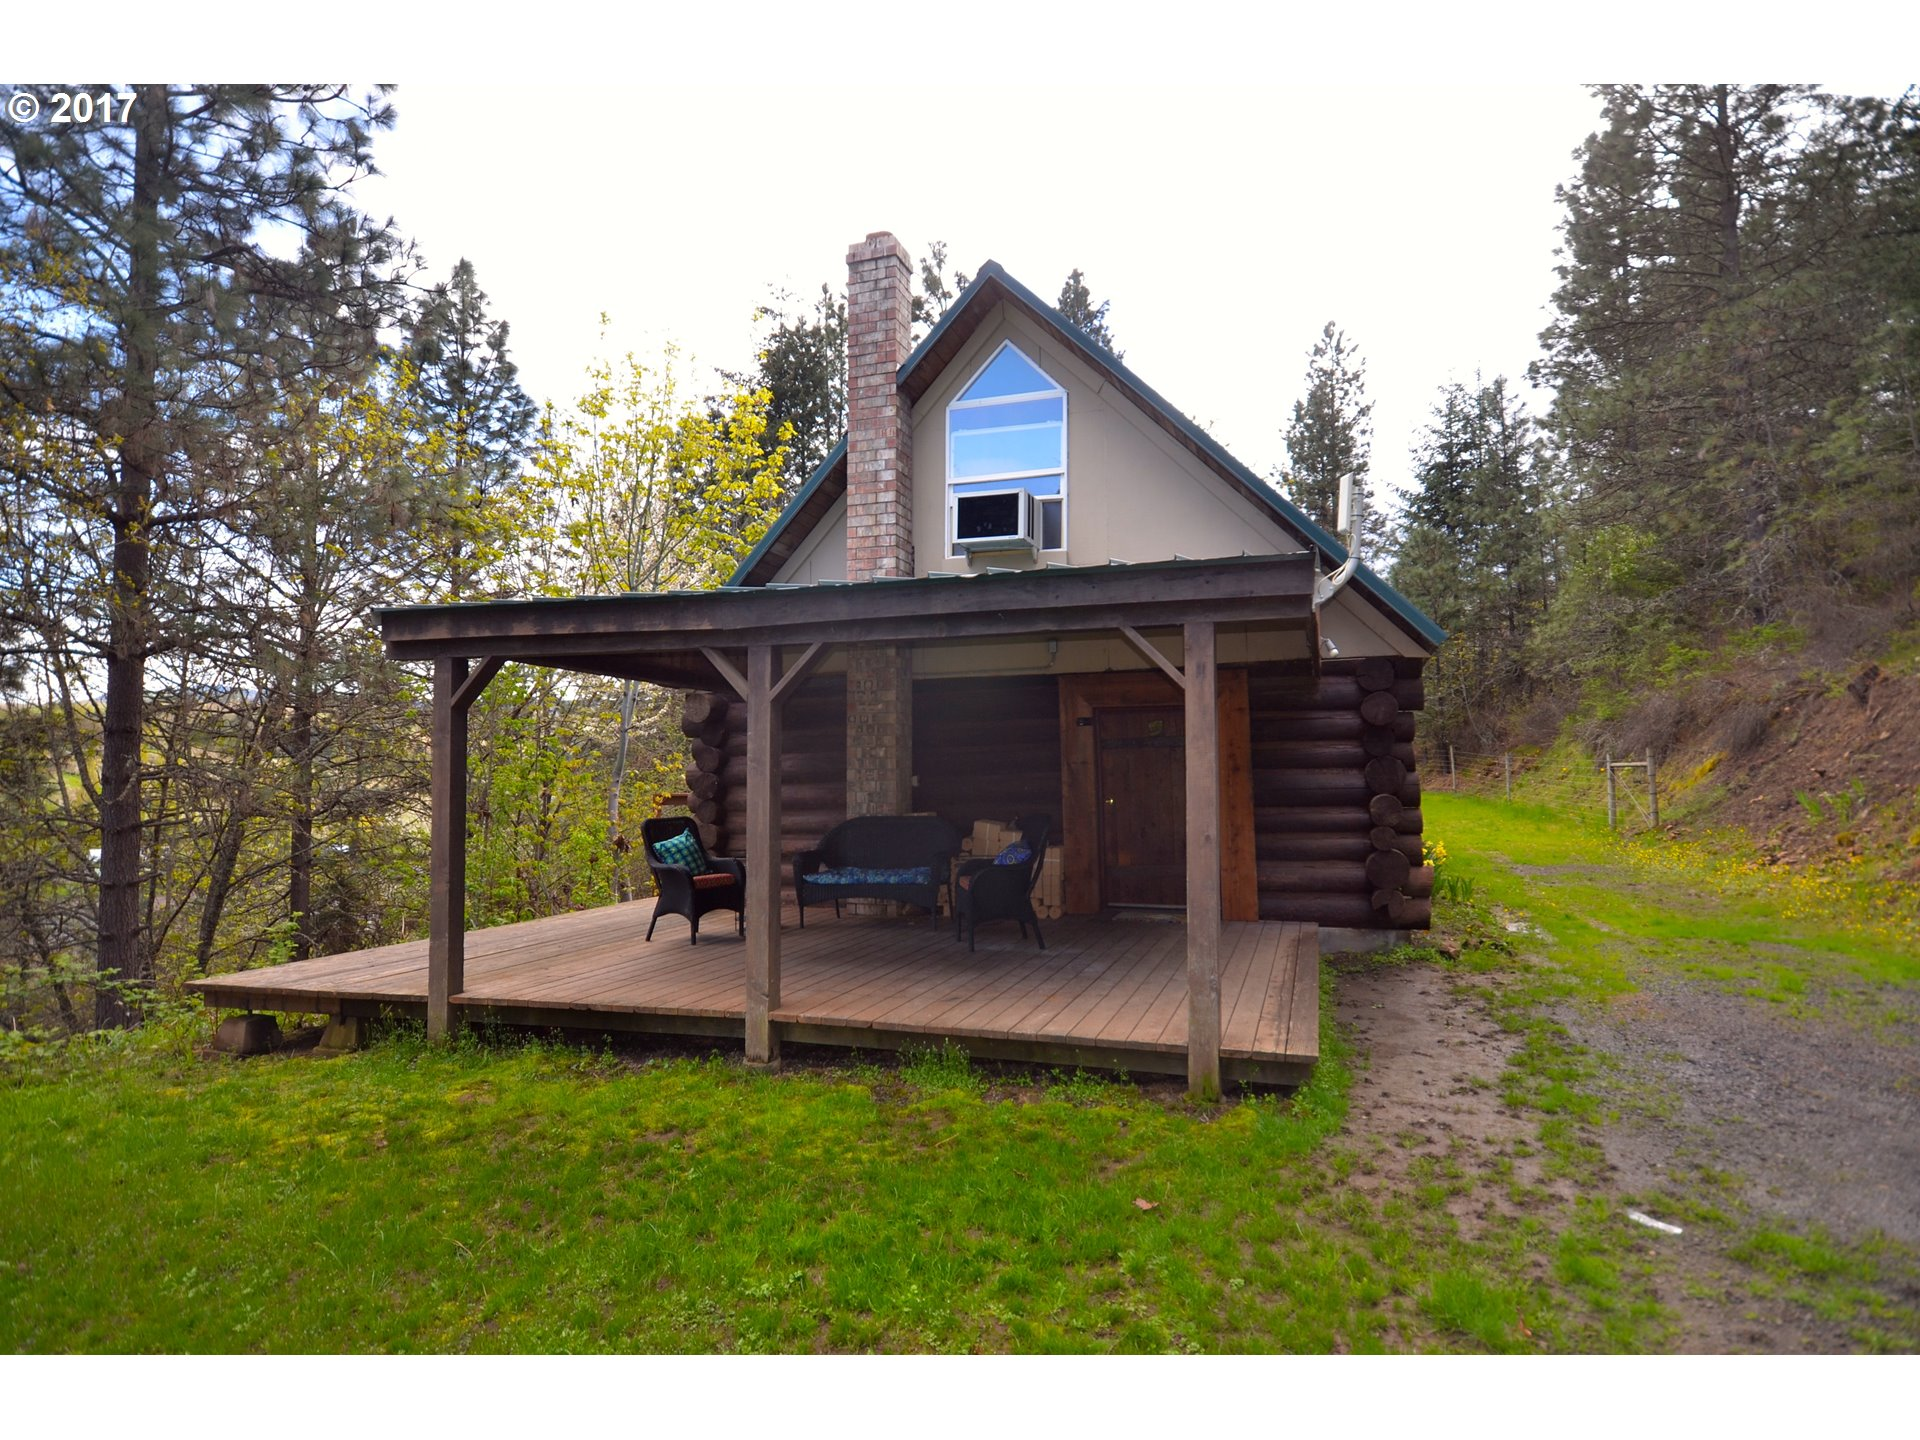 609 HUSKEY RD, Mosier, OR 97040